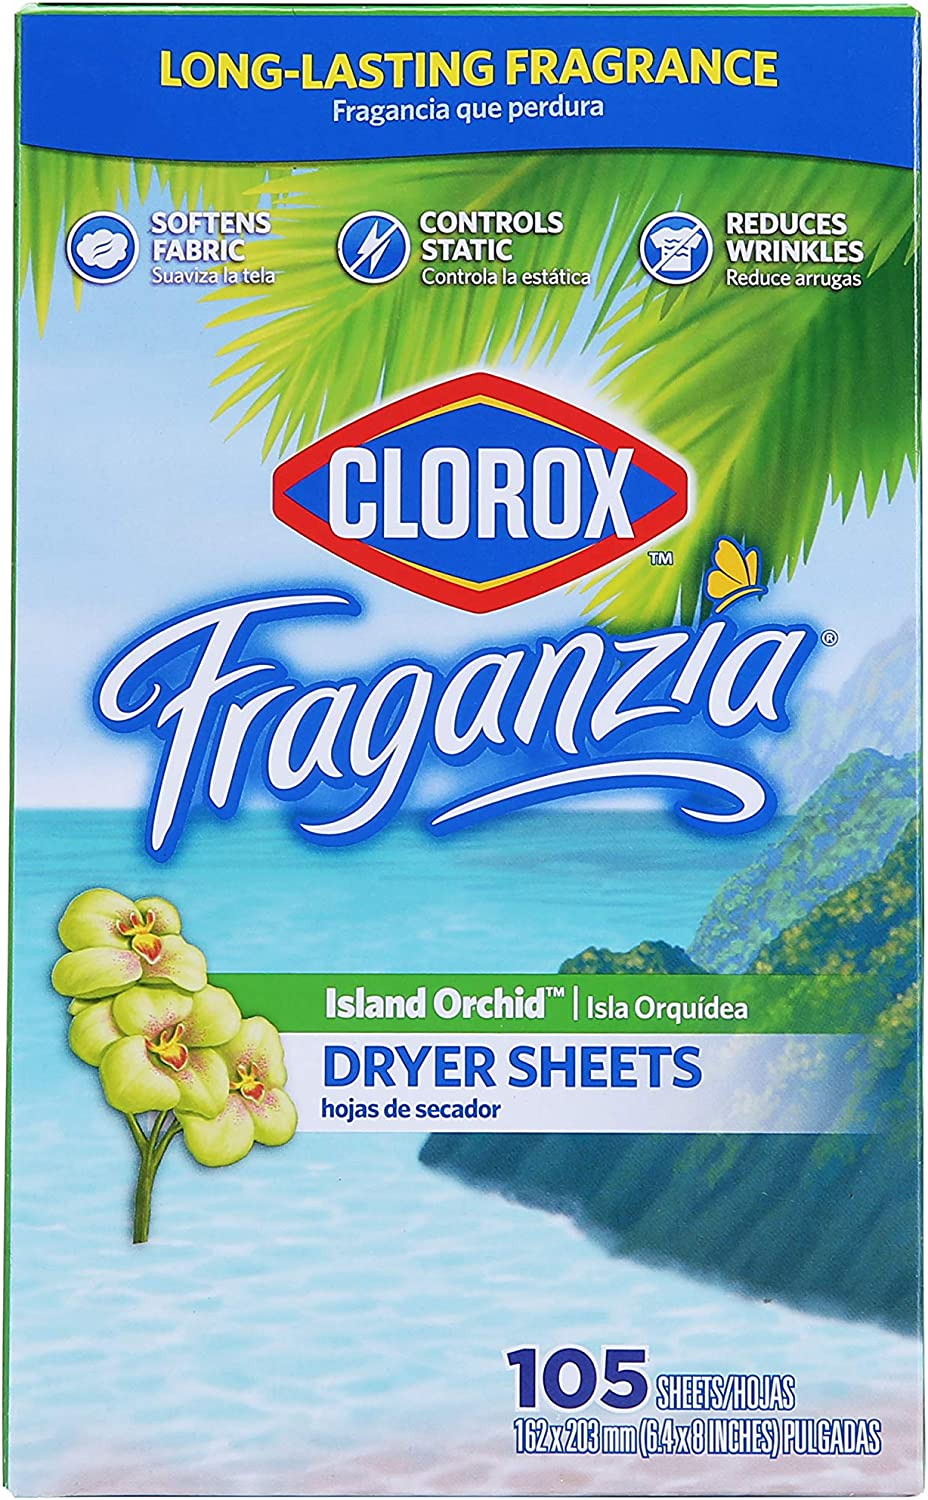 Clorox Fraganzia Fabric Softener Dryer Sheets | Scented Laundry Dryer Sheets for Great Smelling Clothes | Island Orchid Scent Laundry Sheets, 105 Count